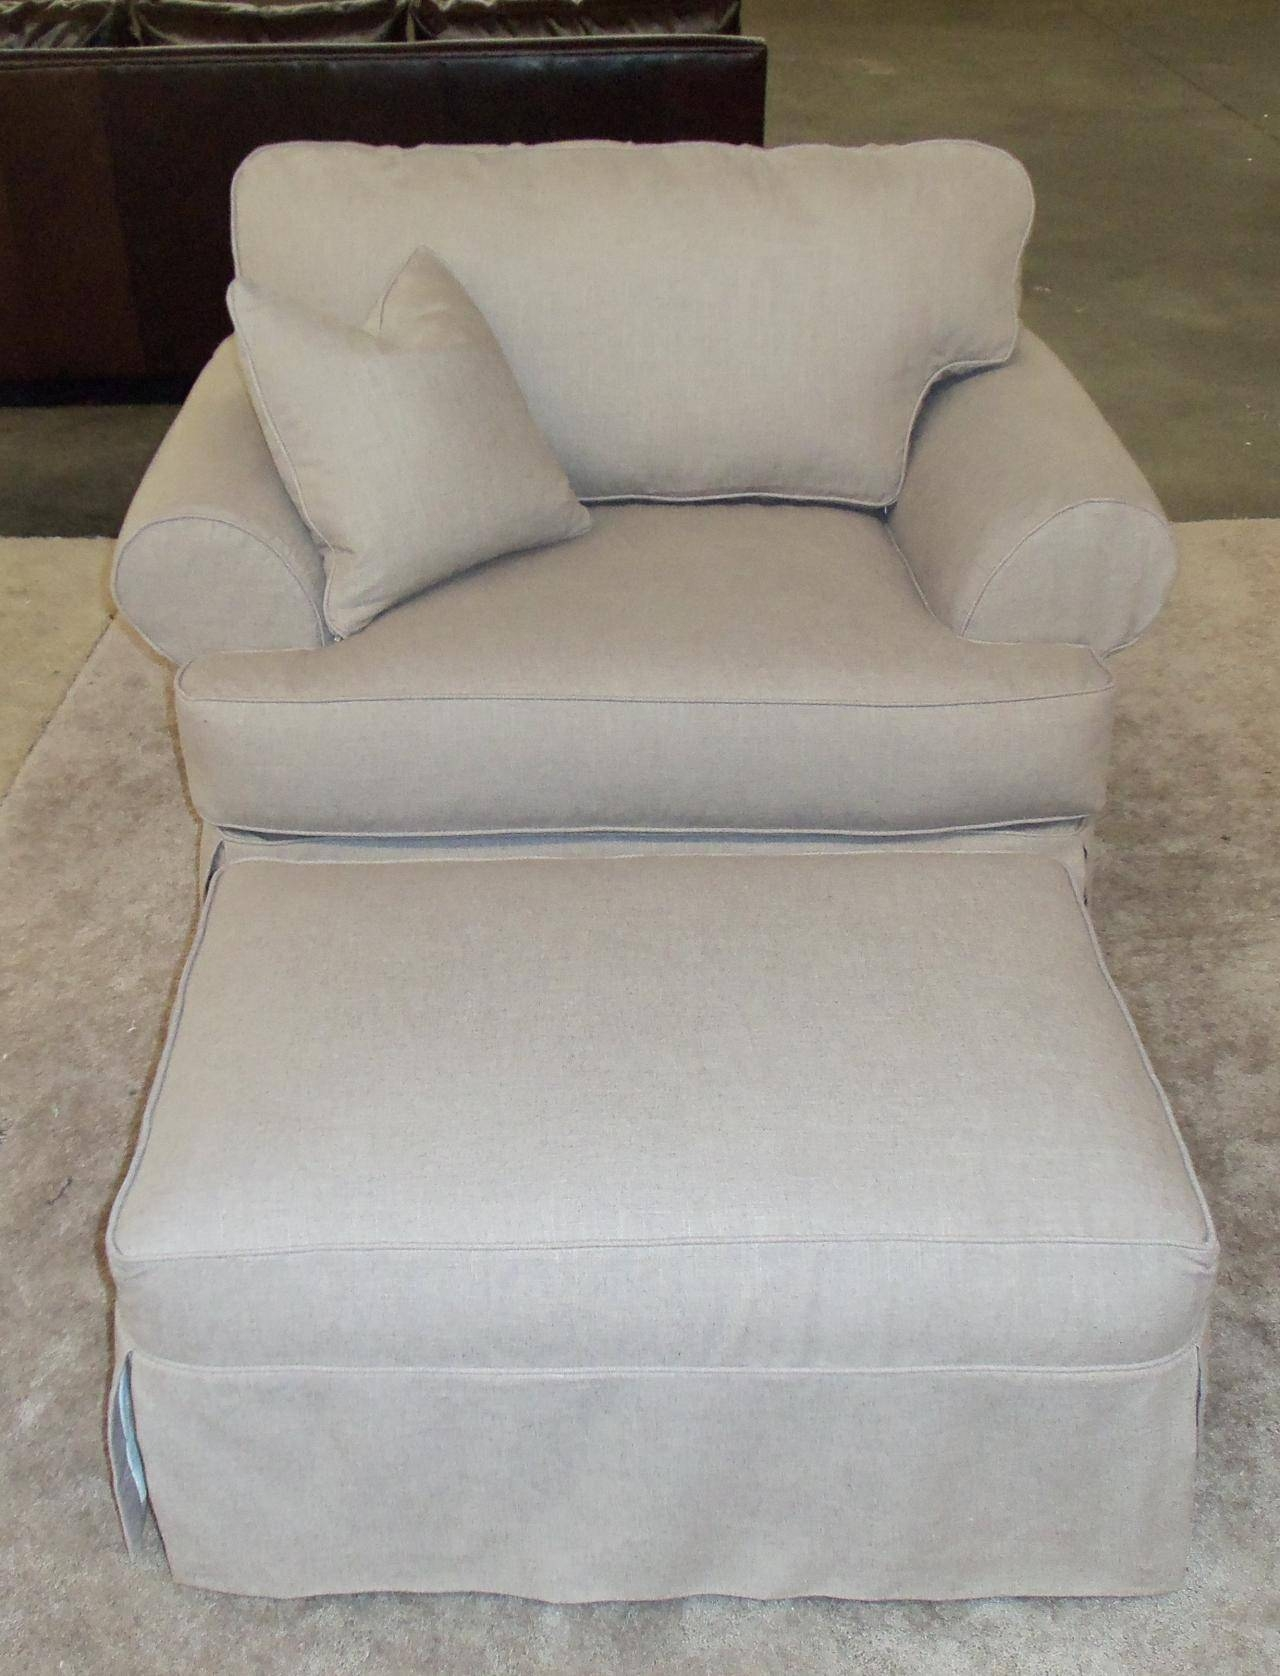 White Chair Slipcover T Cushion Slipcovers For Large Sofas Ottomans T Cushion